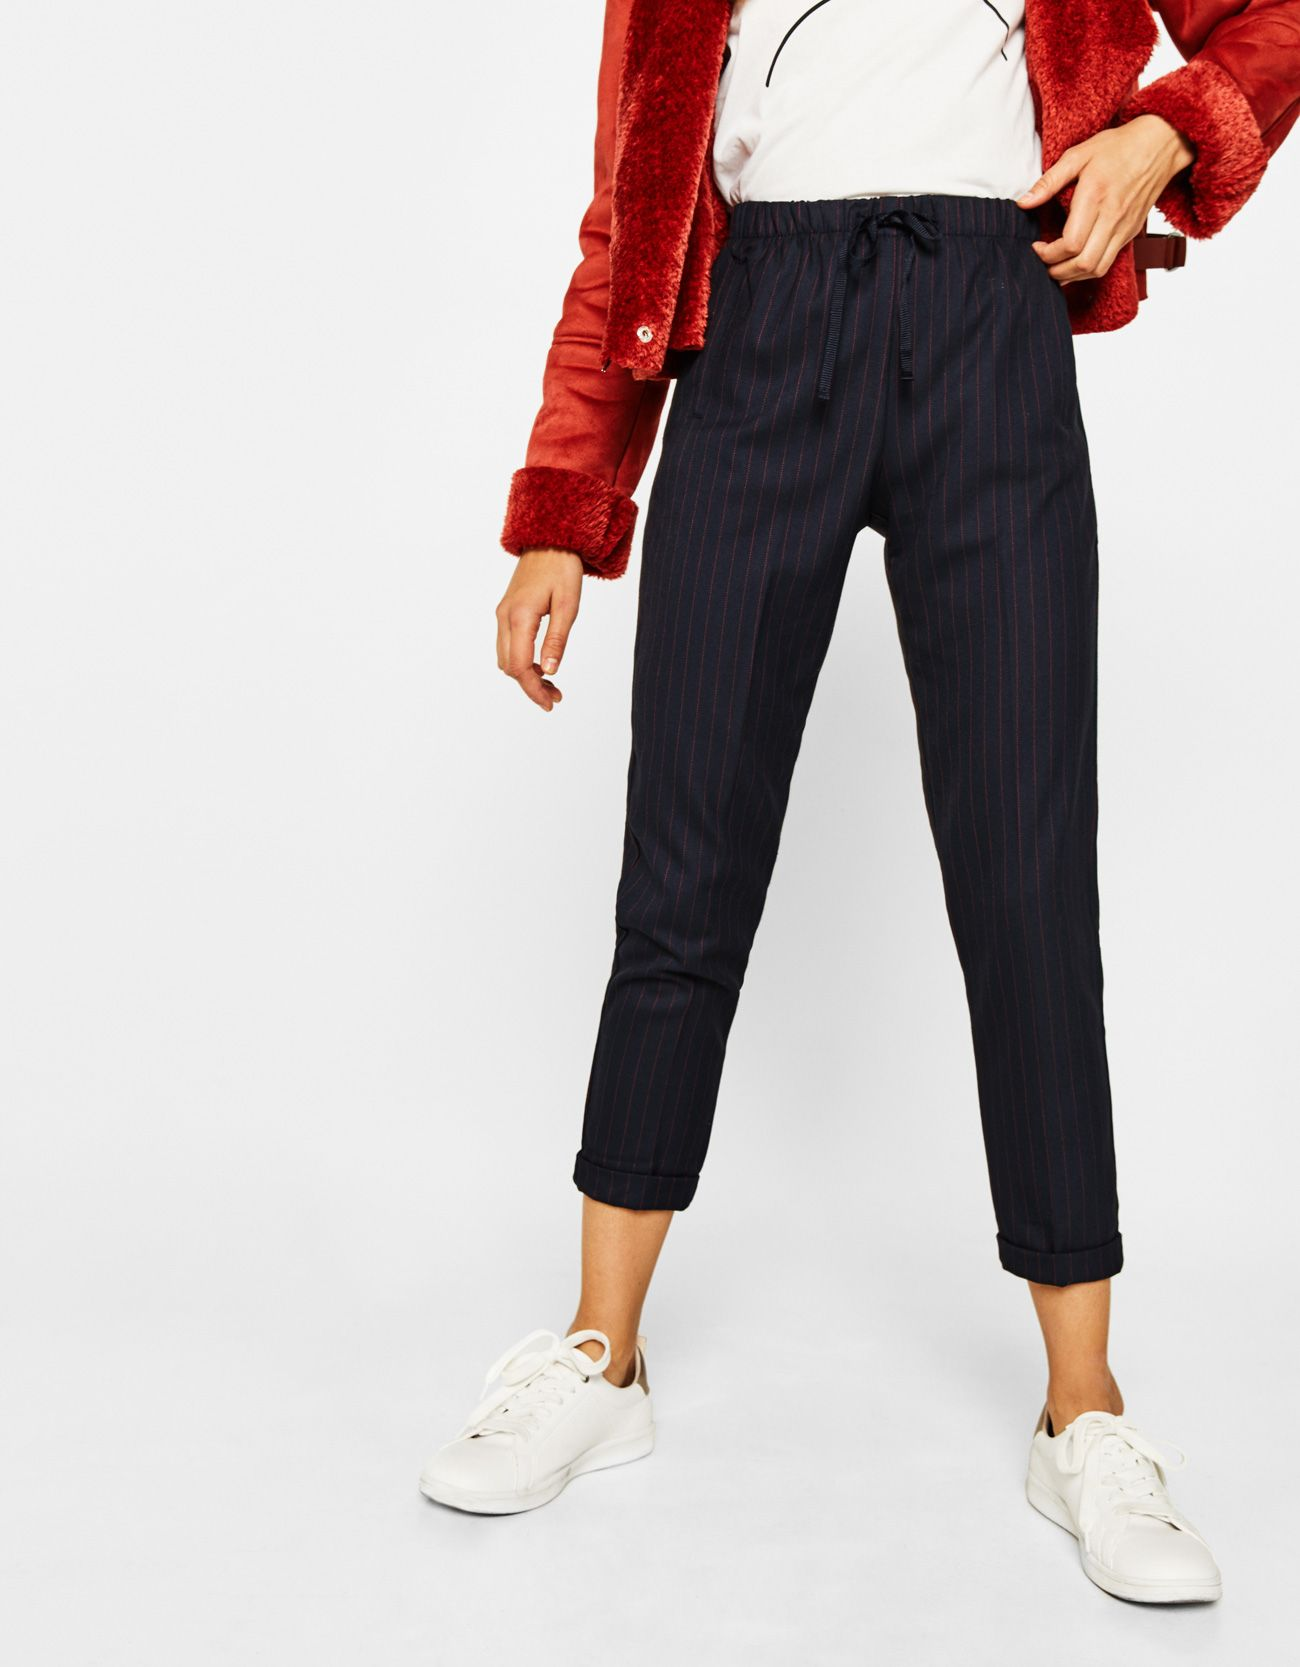 Enjoy every moment of the day with our tailored trousers, culottes or  palazzo pants for women at Bershka this Autumn Winter Don't let anything  stop you!